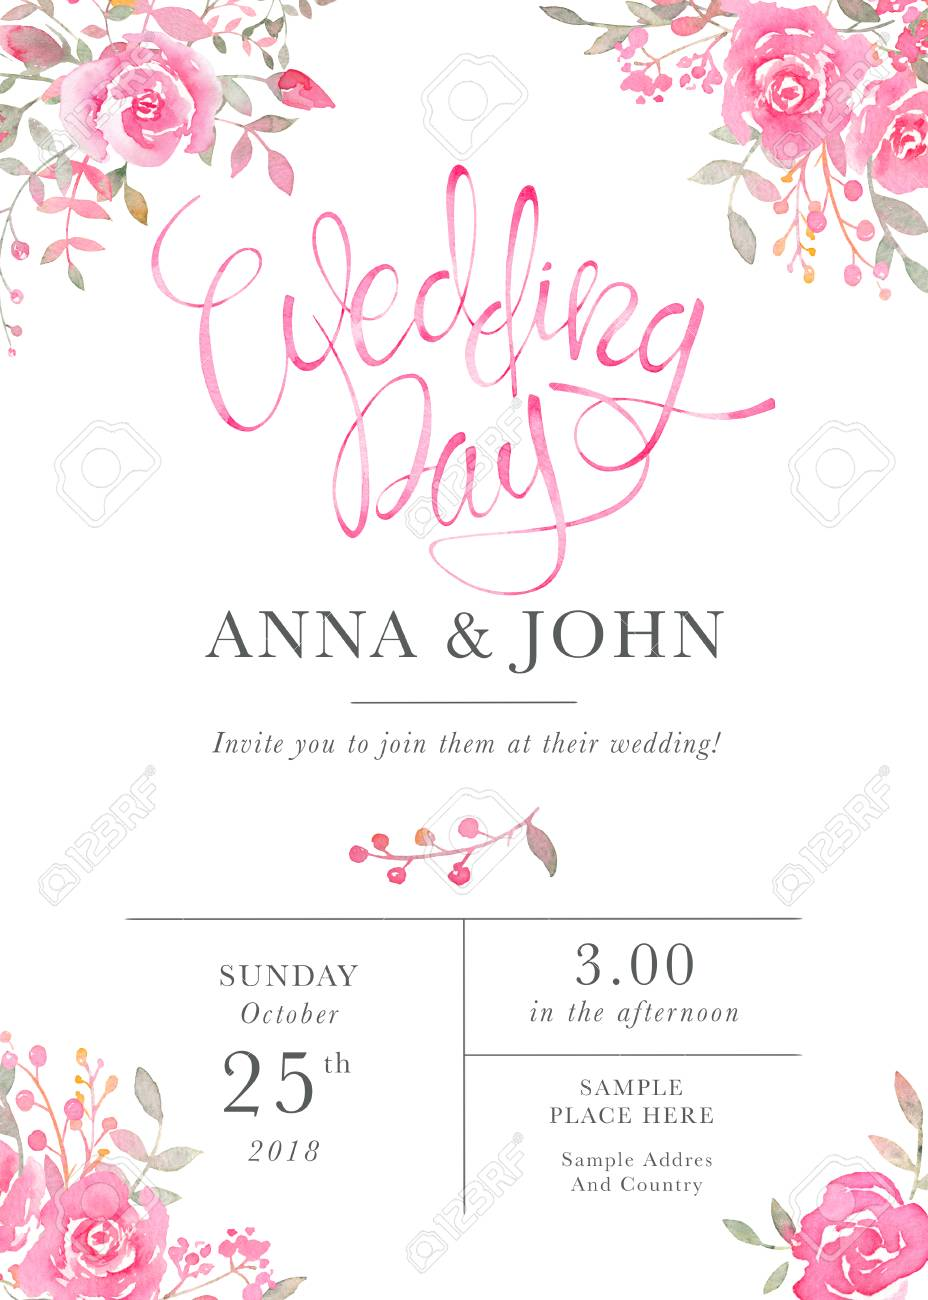 Stock Photo Wedding Invitation Card Template With Watercolor Rose Flowers Elegant Romantic Postcard Layout Pink Roses And Message For: Wedding Invitations With Flowers At Websimilar.org